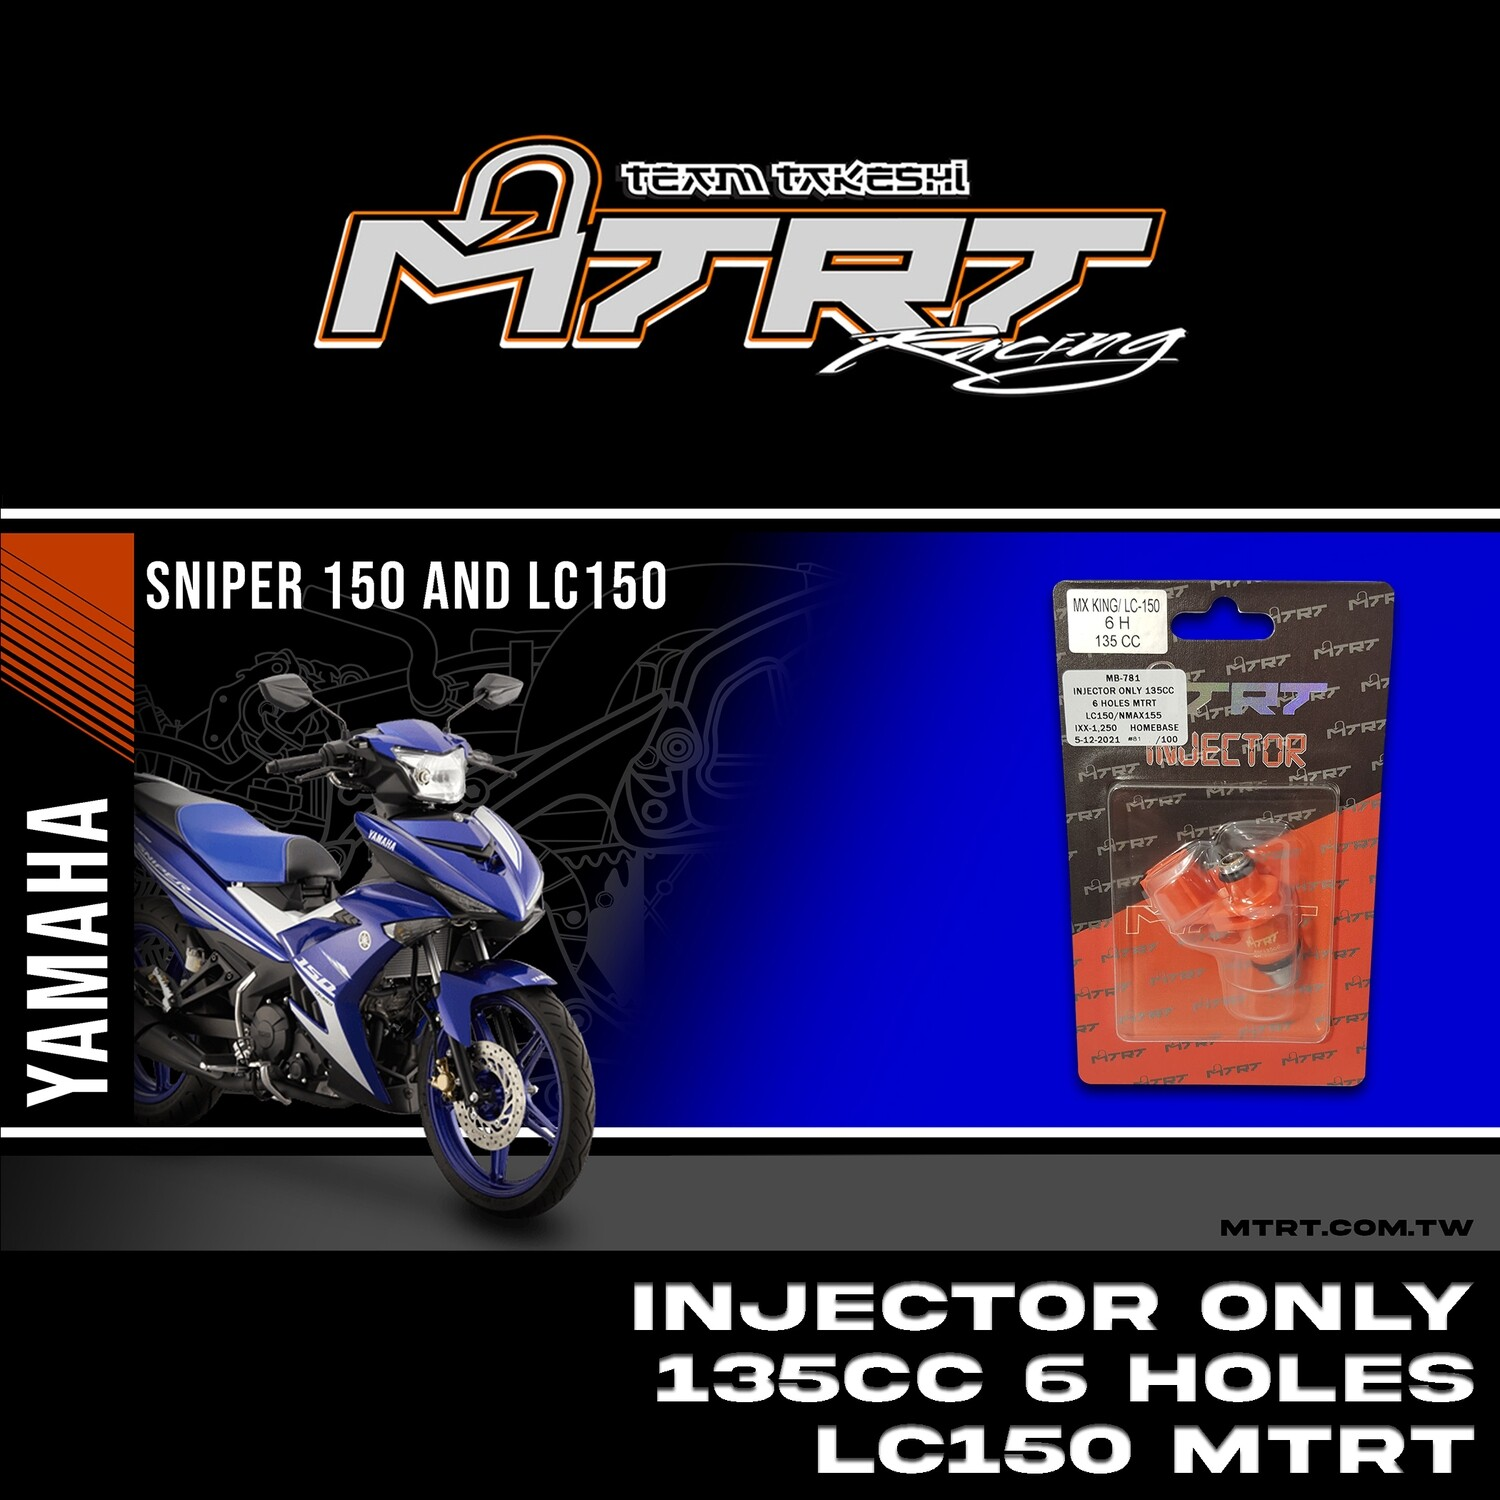 INJECTOR ONLY 135CC 6HOLES  LC150/NMAX155/MXI  MTRT